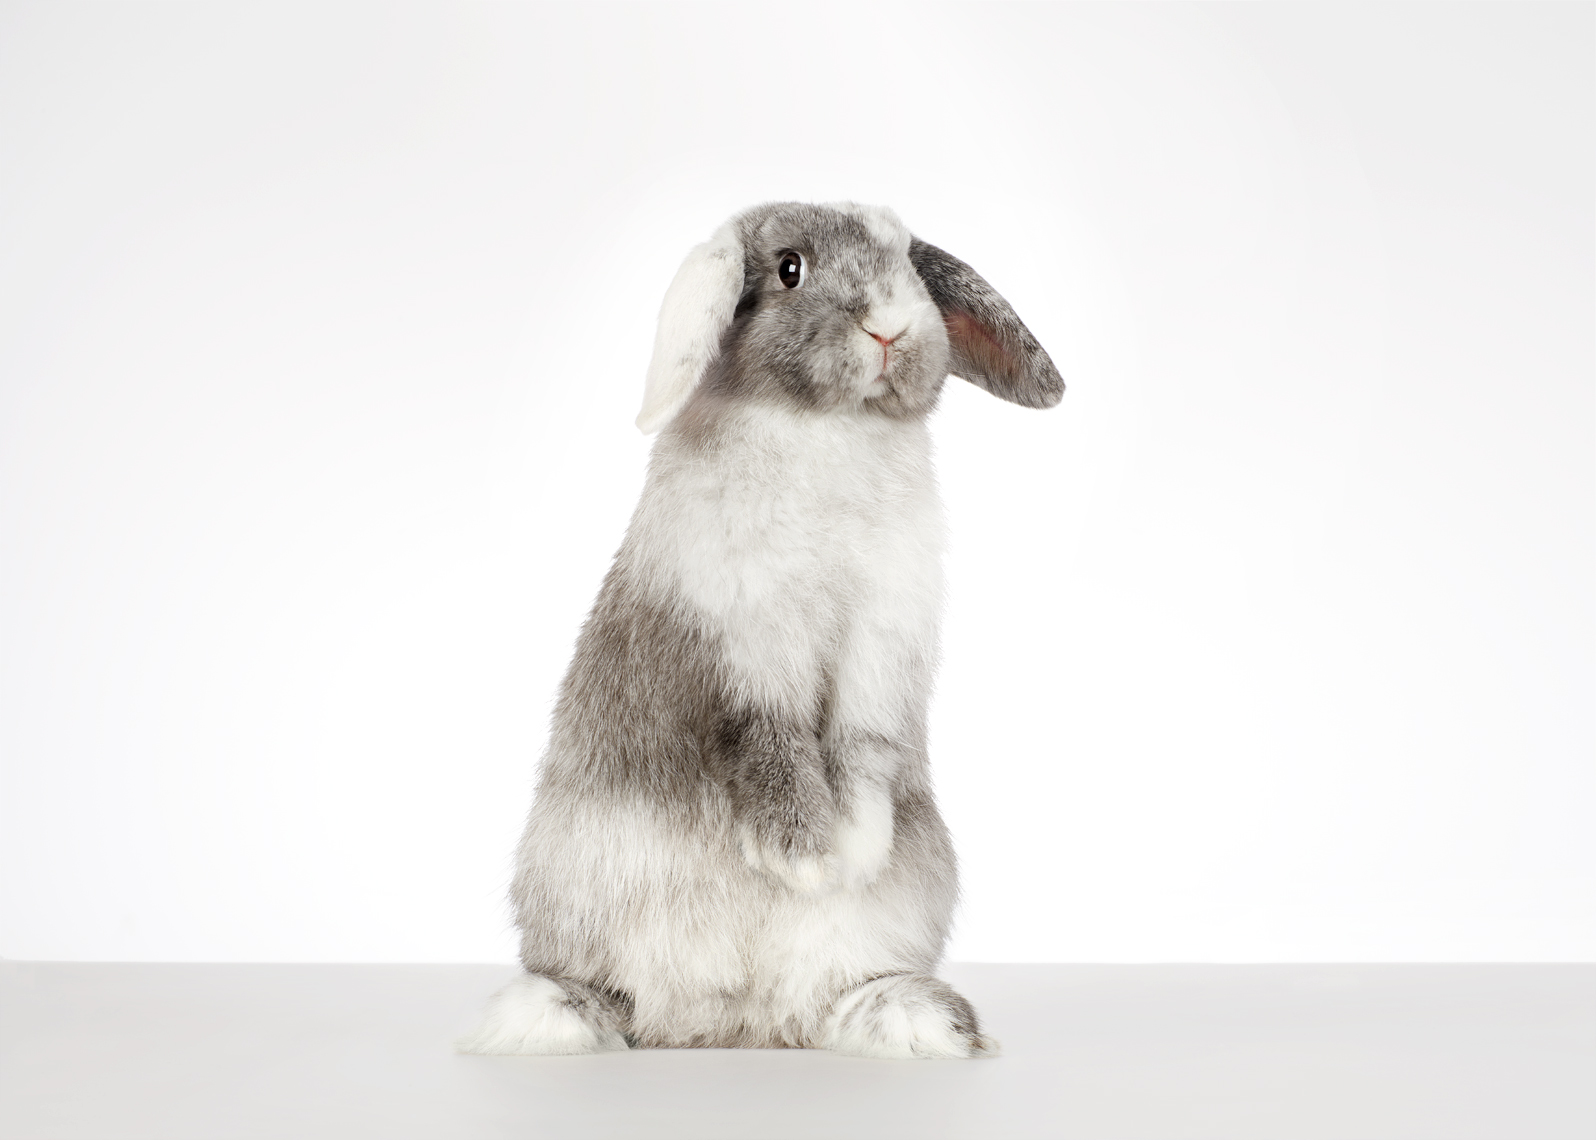 Rabbit standing on hind legs